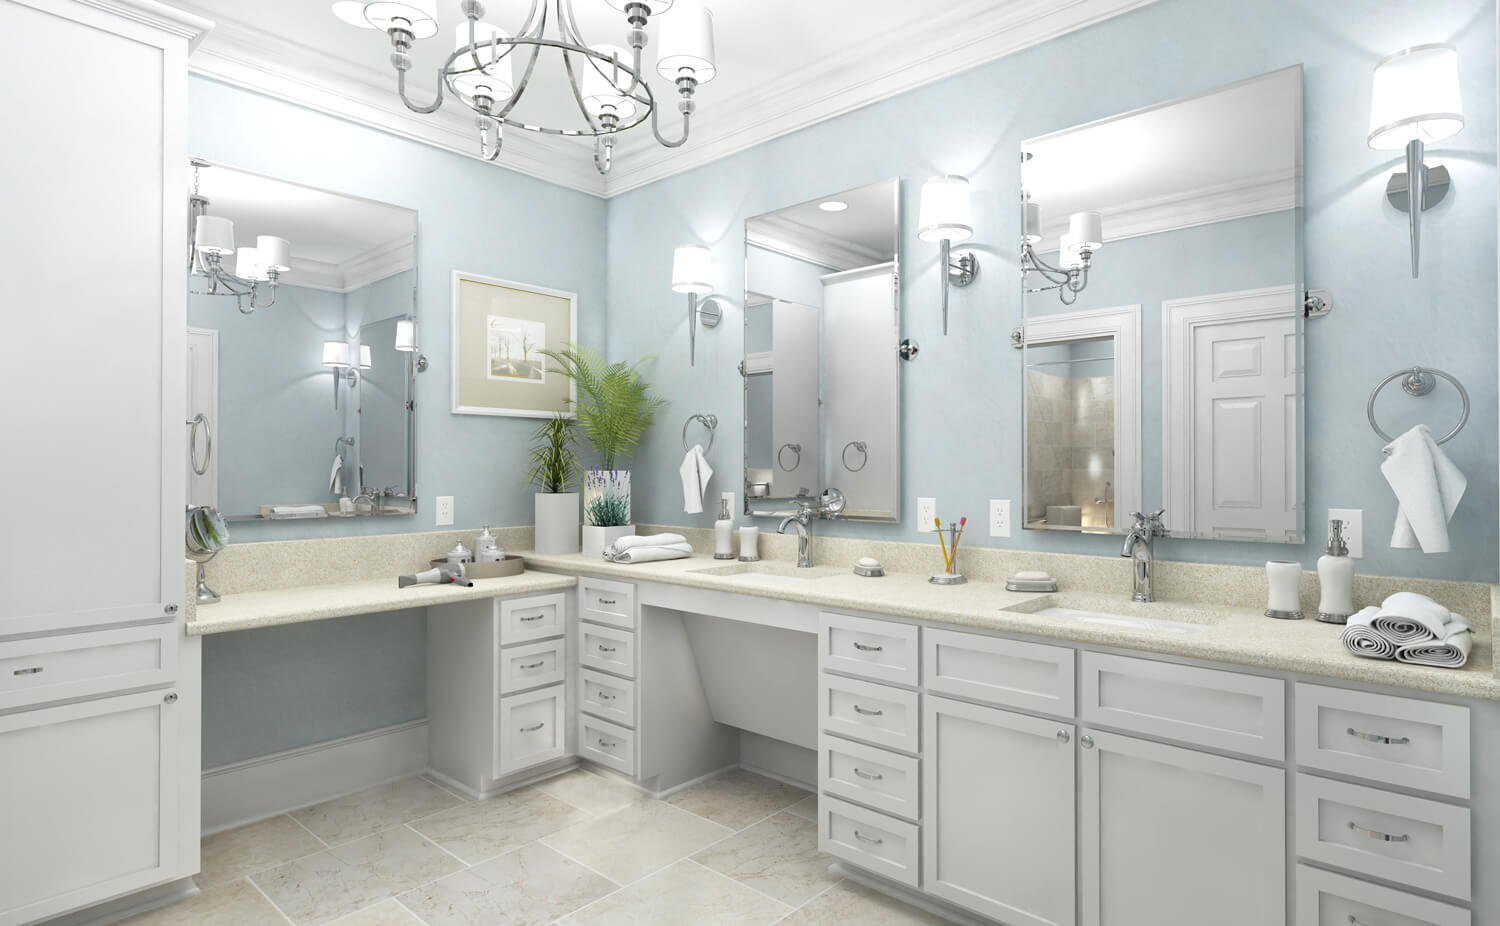 Designed by Foshee Architecture – Private Residence 3 Master Bath